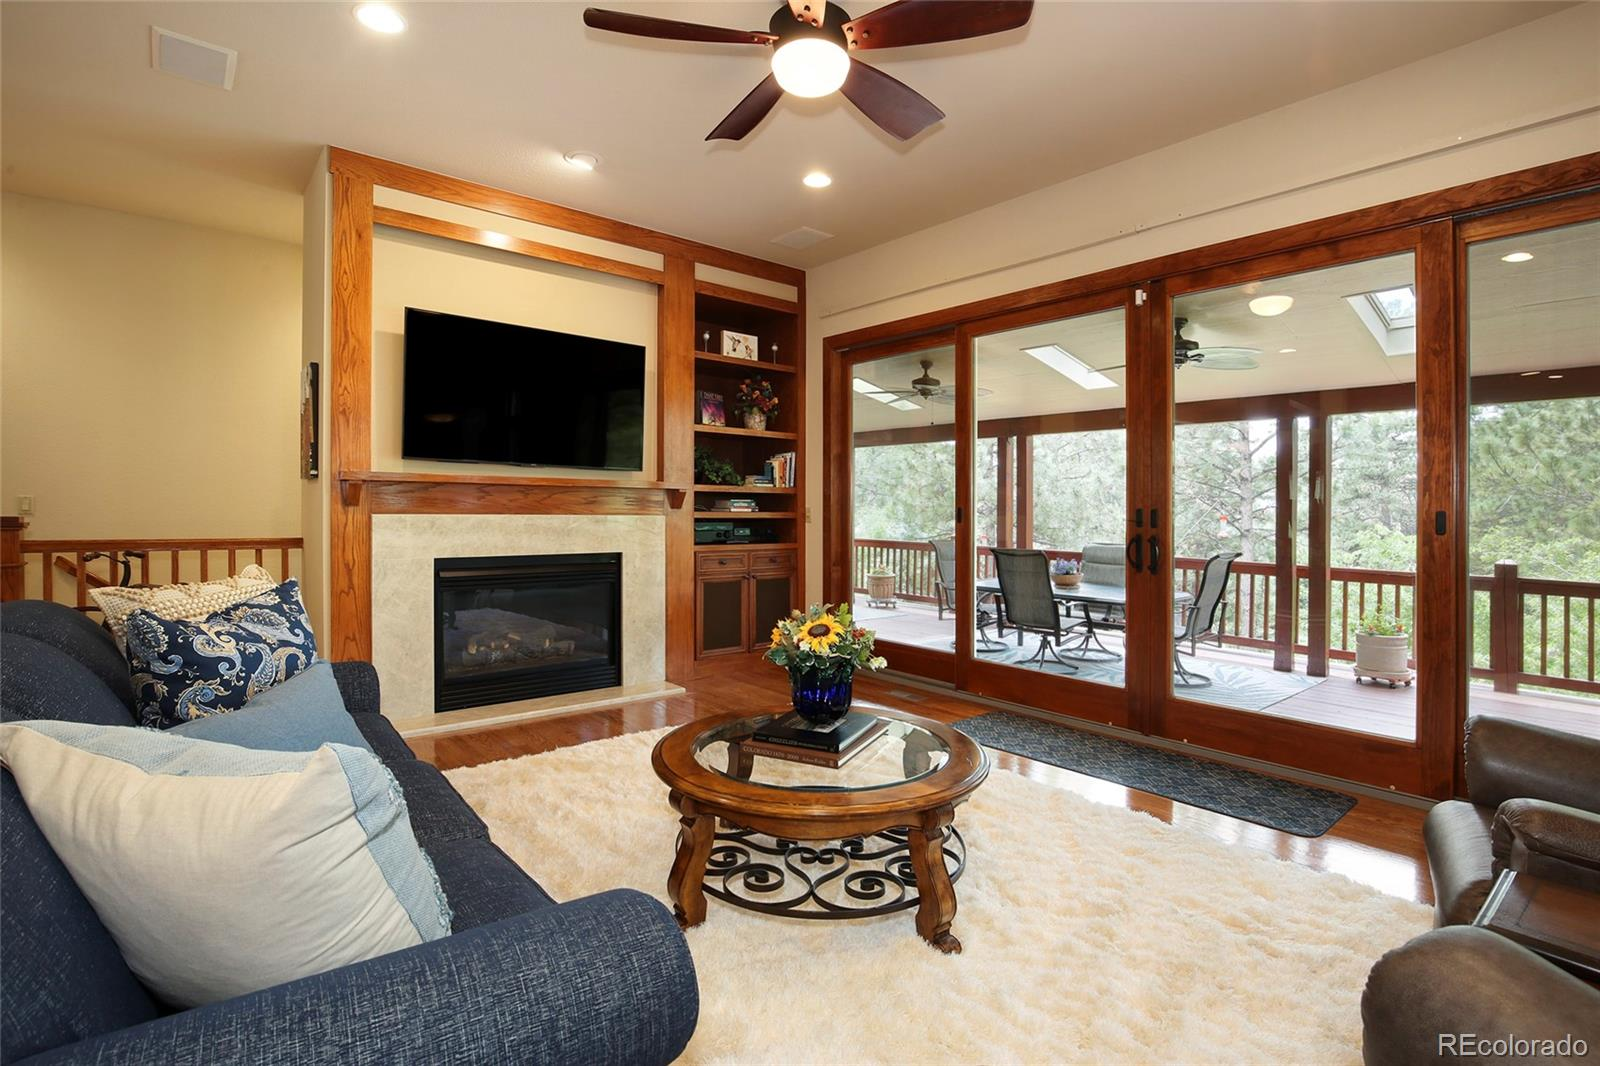 MLS# 8150320 - 13 - 1198 Forest Trails Drive, Castle Pines, CO 80108